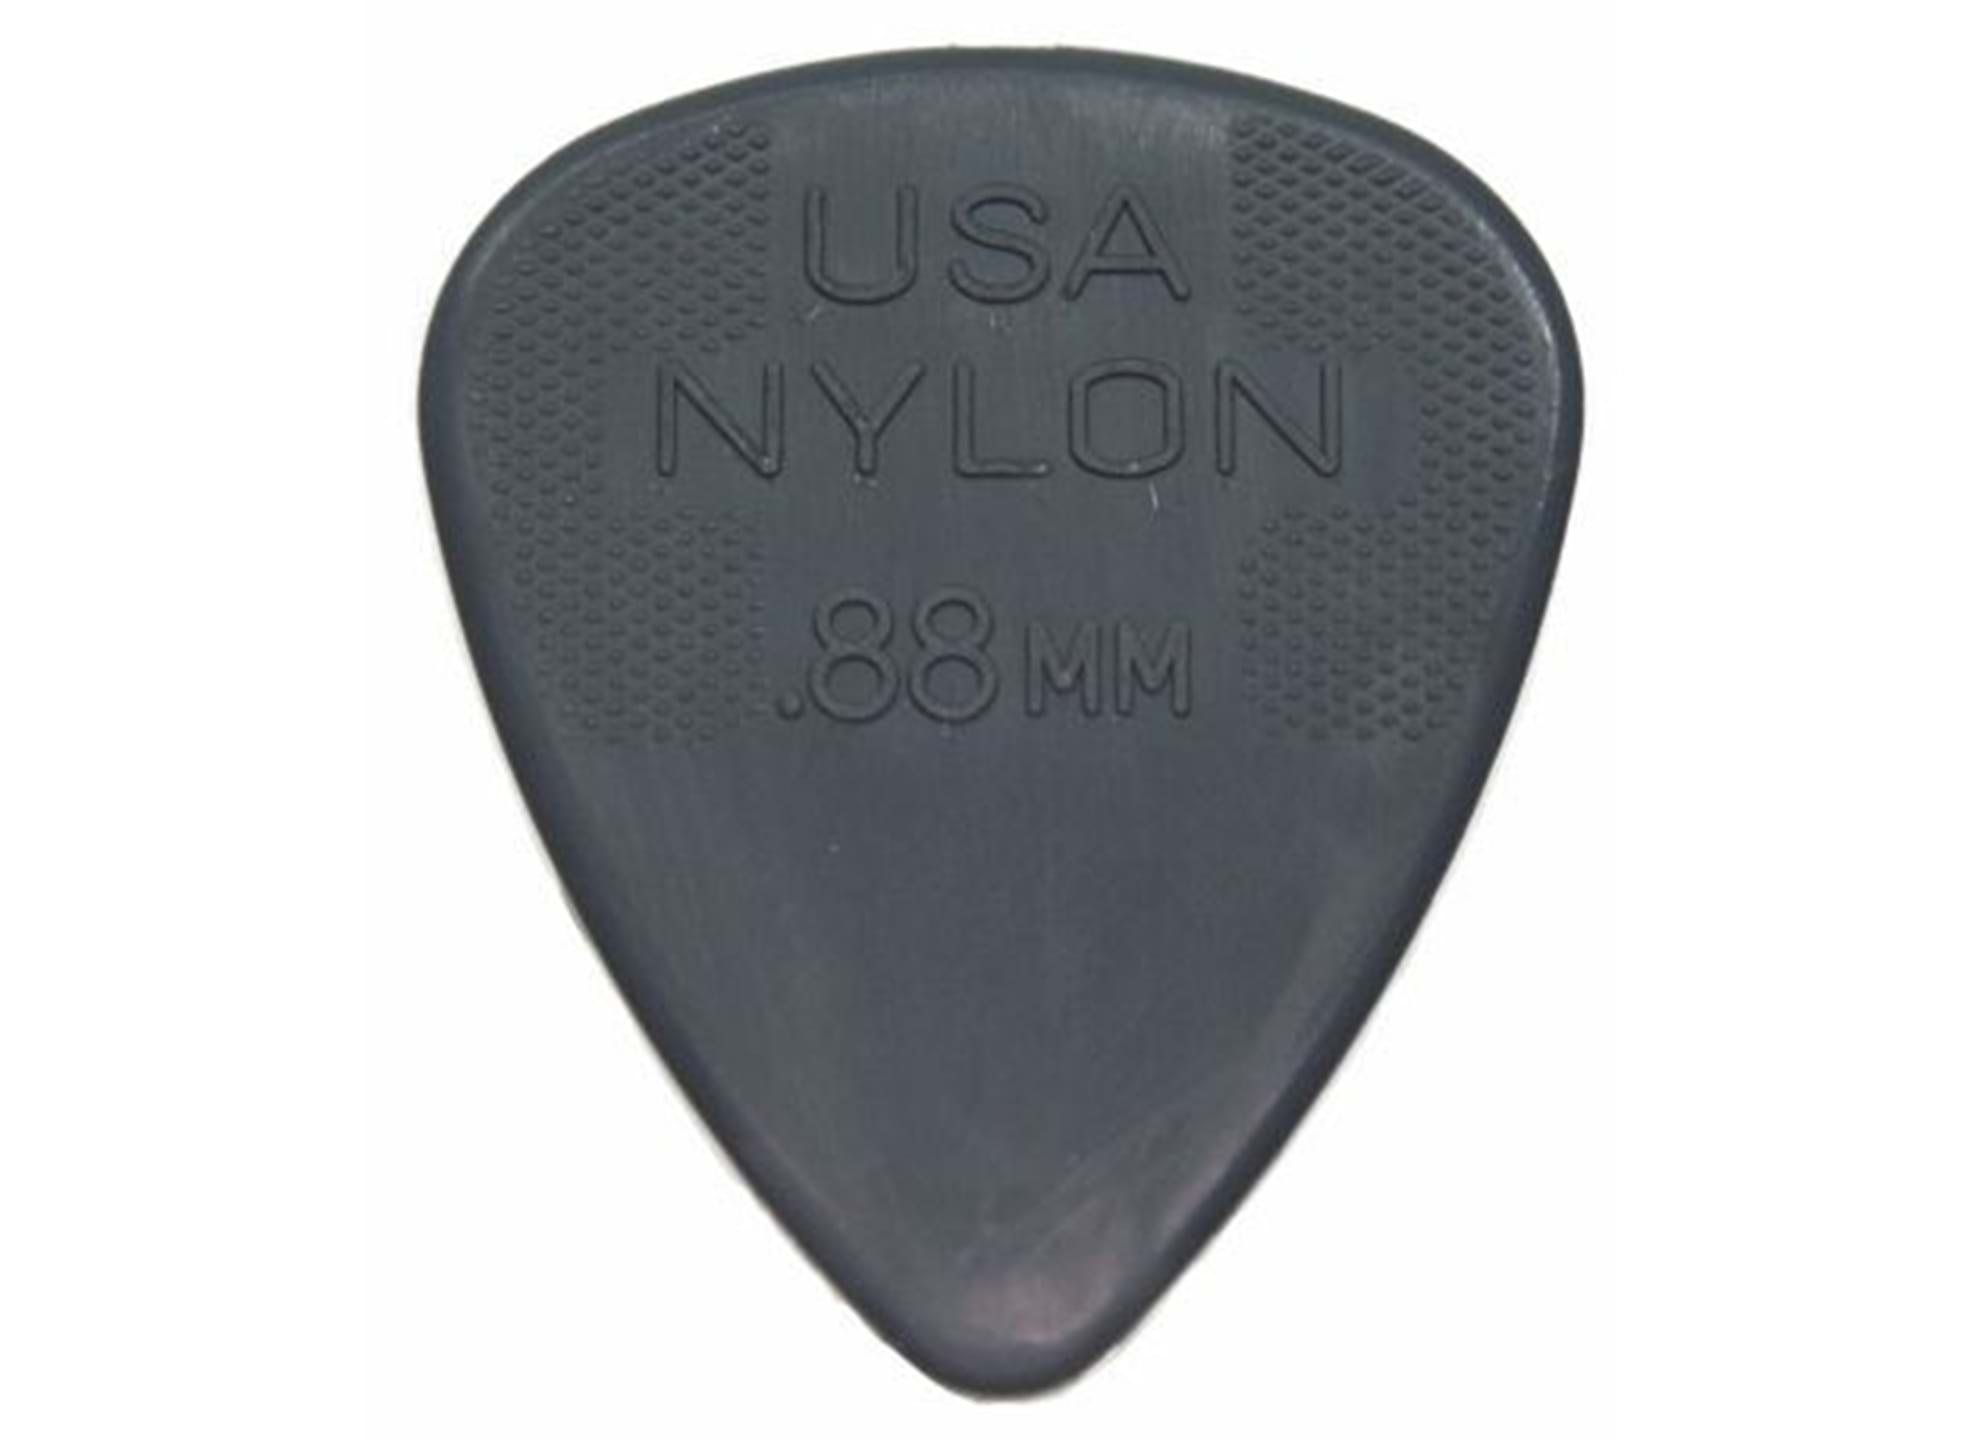 Nylon Standard 0.88mm (10-pack)